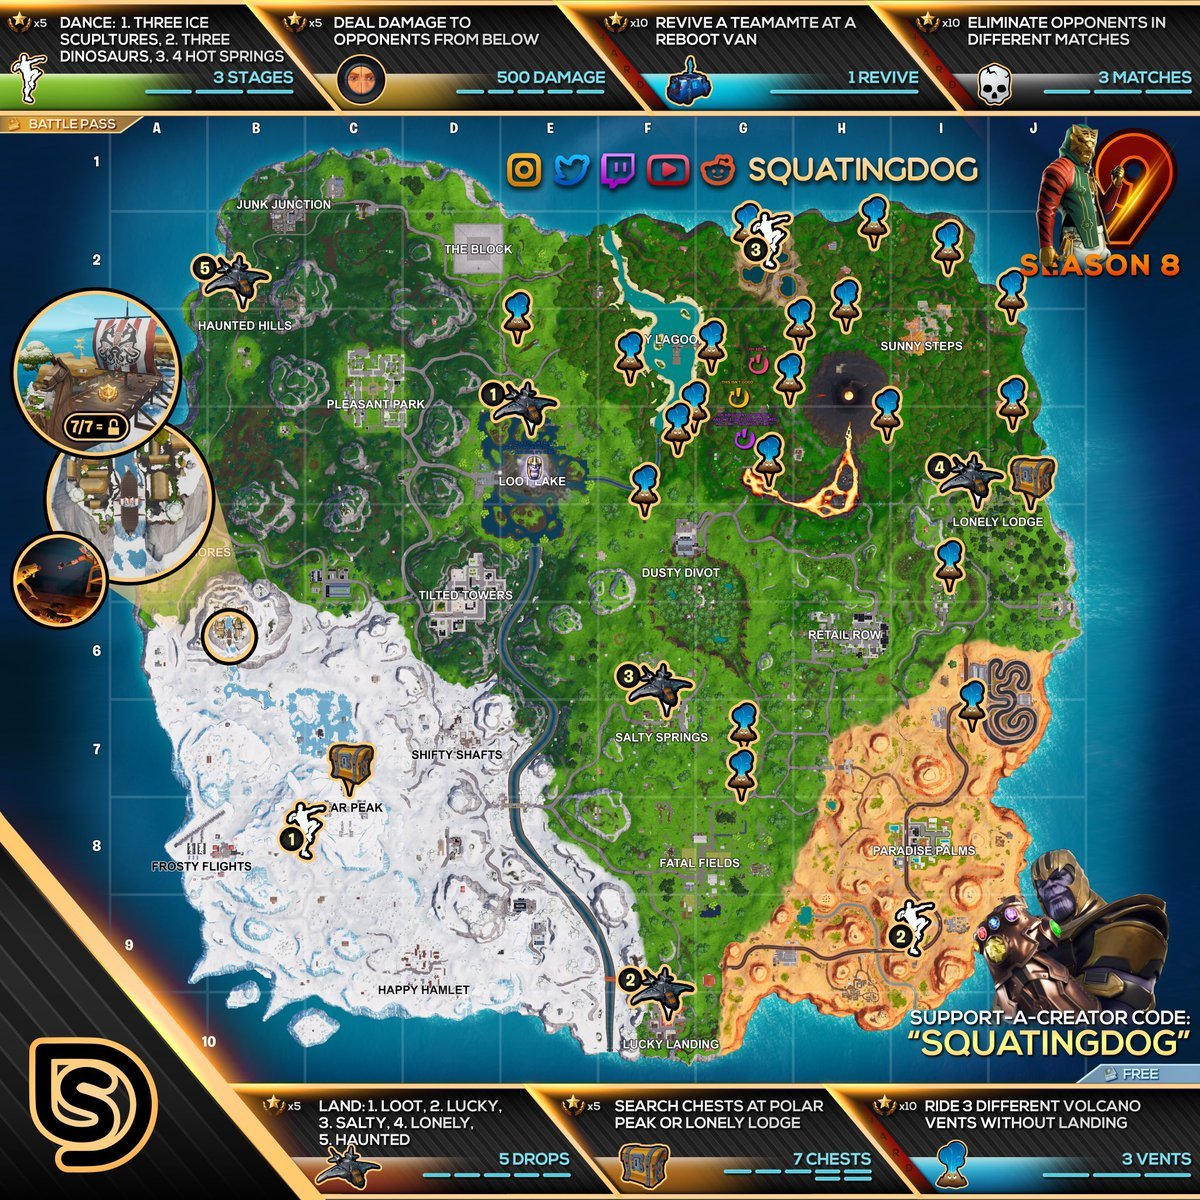 fortnite season 8 week 9 challenges cheat sheet map - when is fortnite season 9 ending